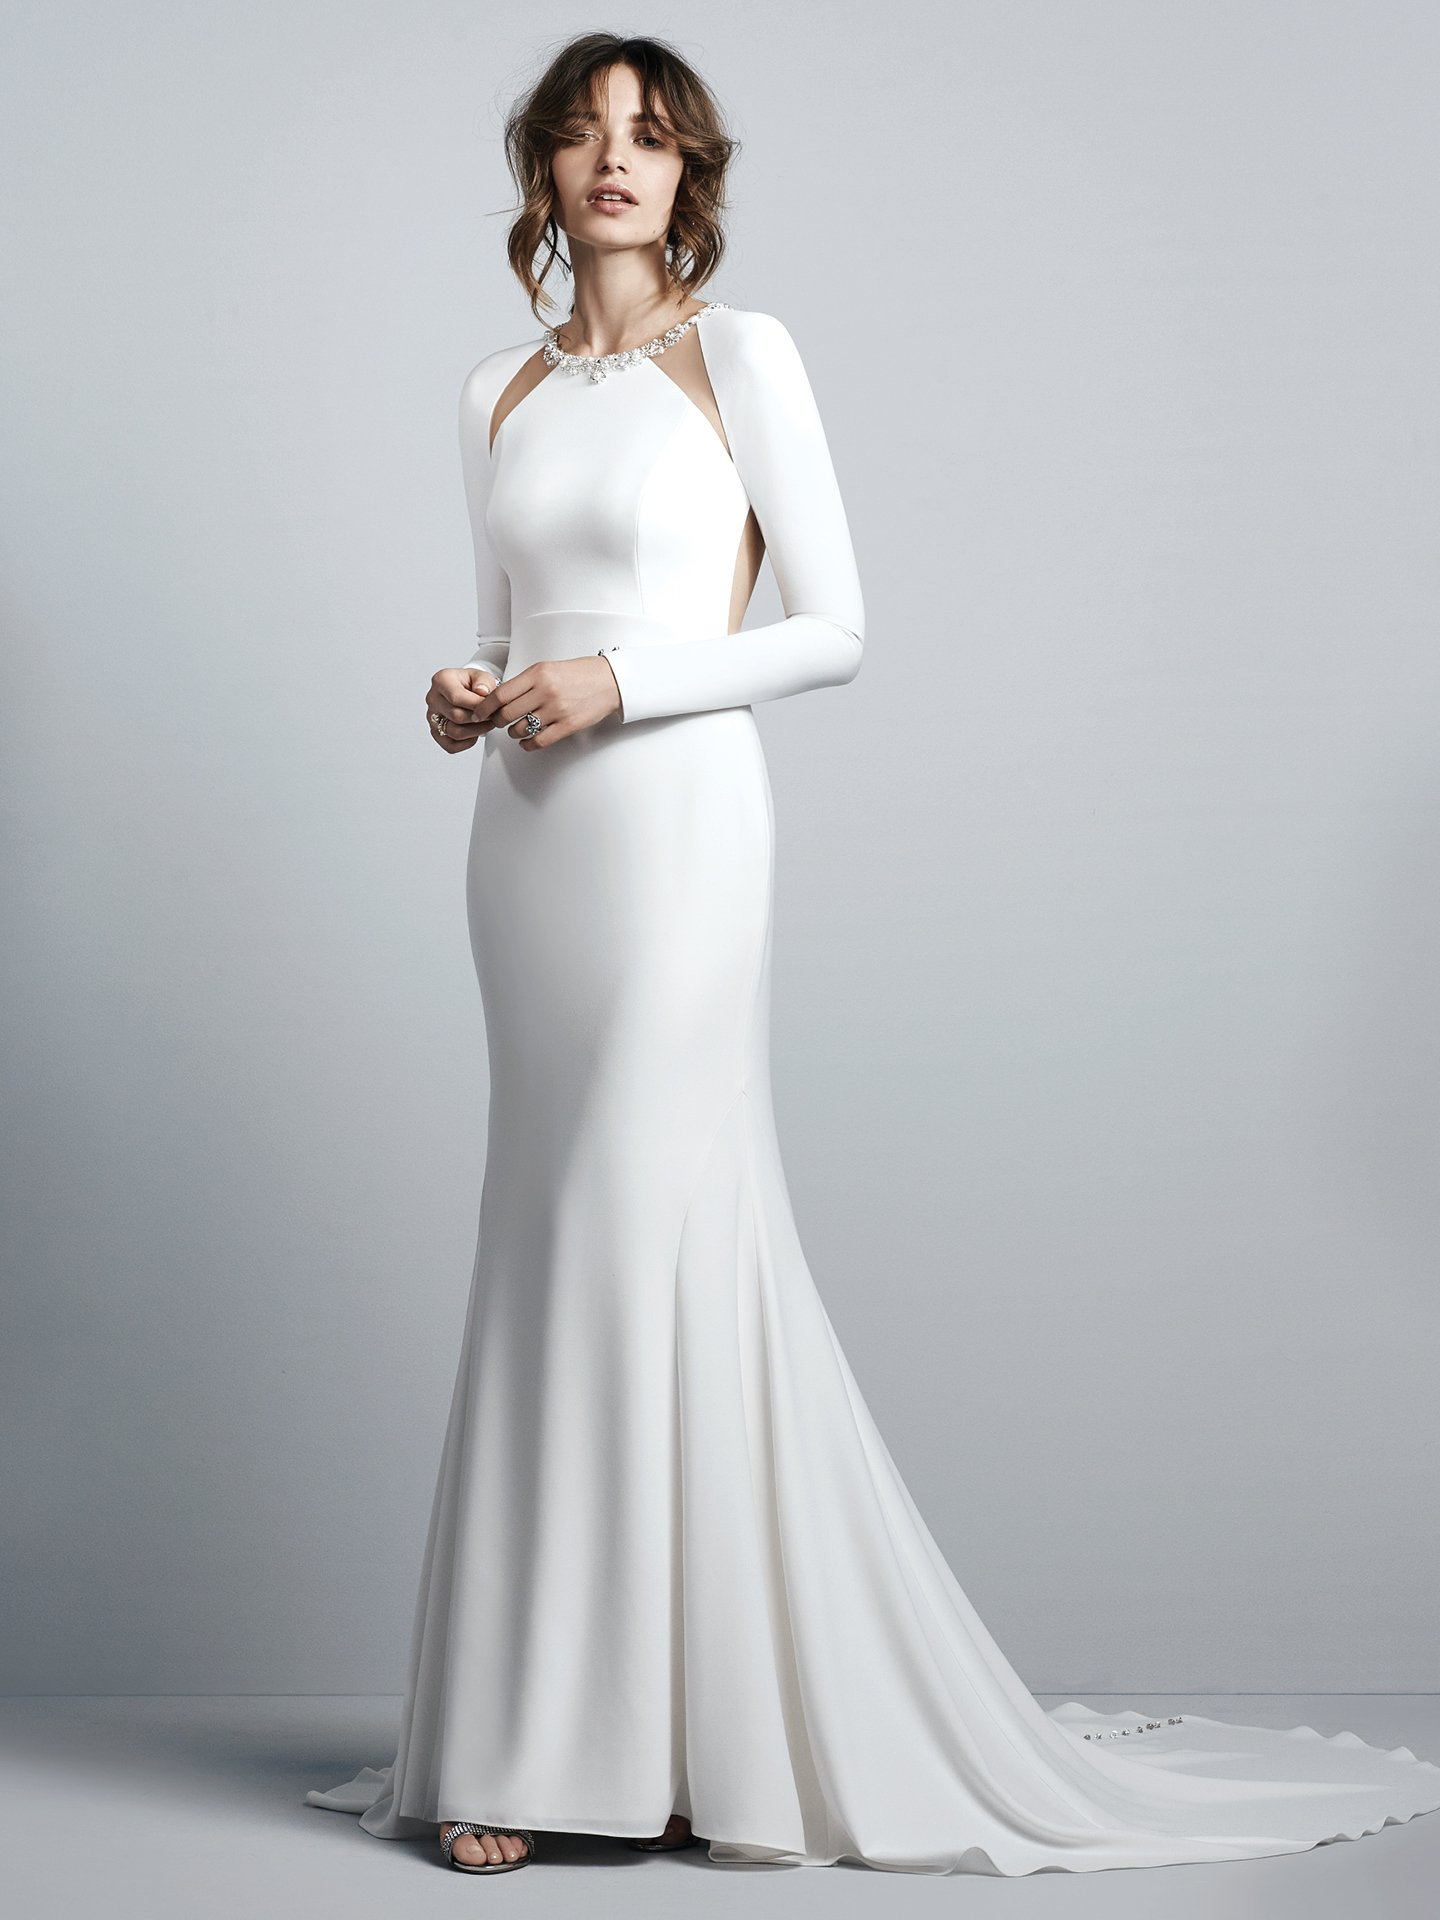 40 swoon worthy long sleeve wedding dresses weddingsonline badgley mischka stockists include anne gregory bridal in wicklow dublin bridal house kathy de stafford in dublin and tipperary and covet in dublin ombrellifo Image collections